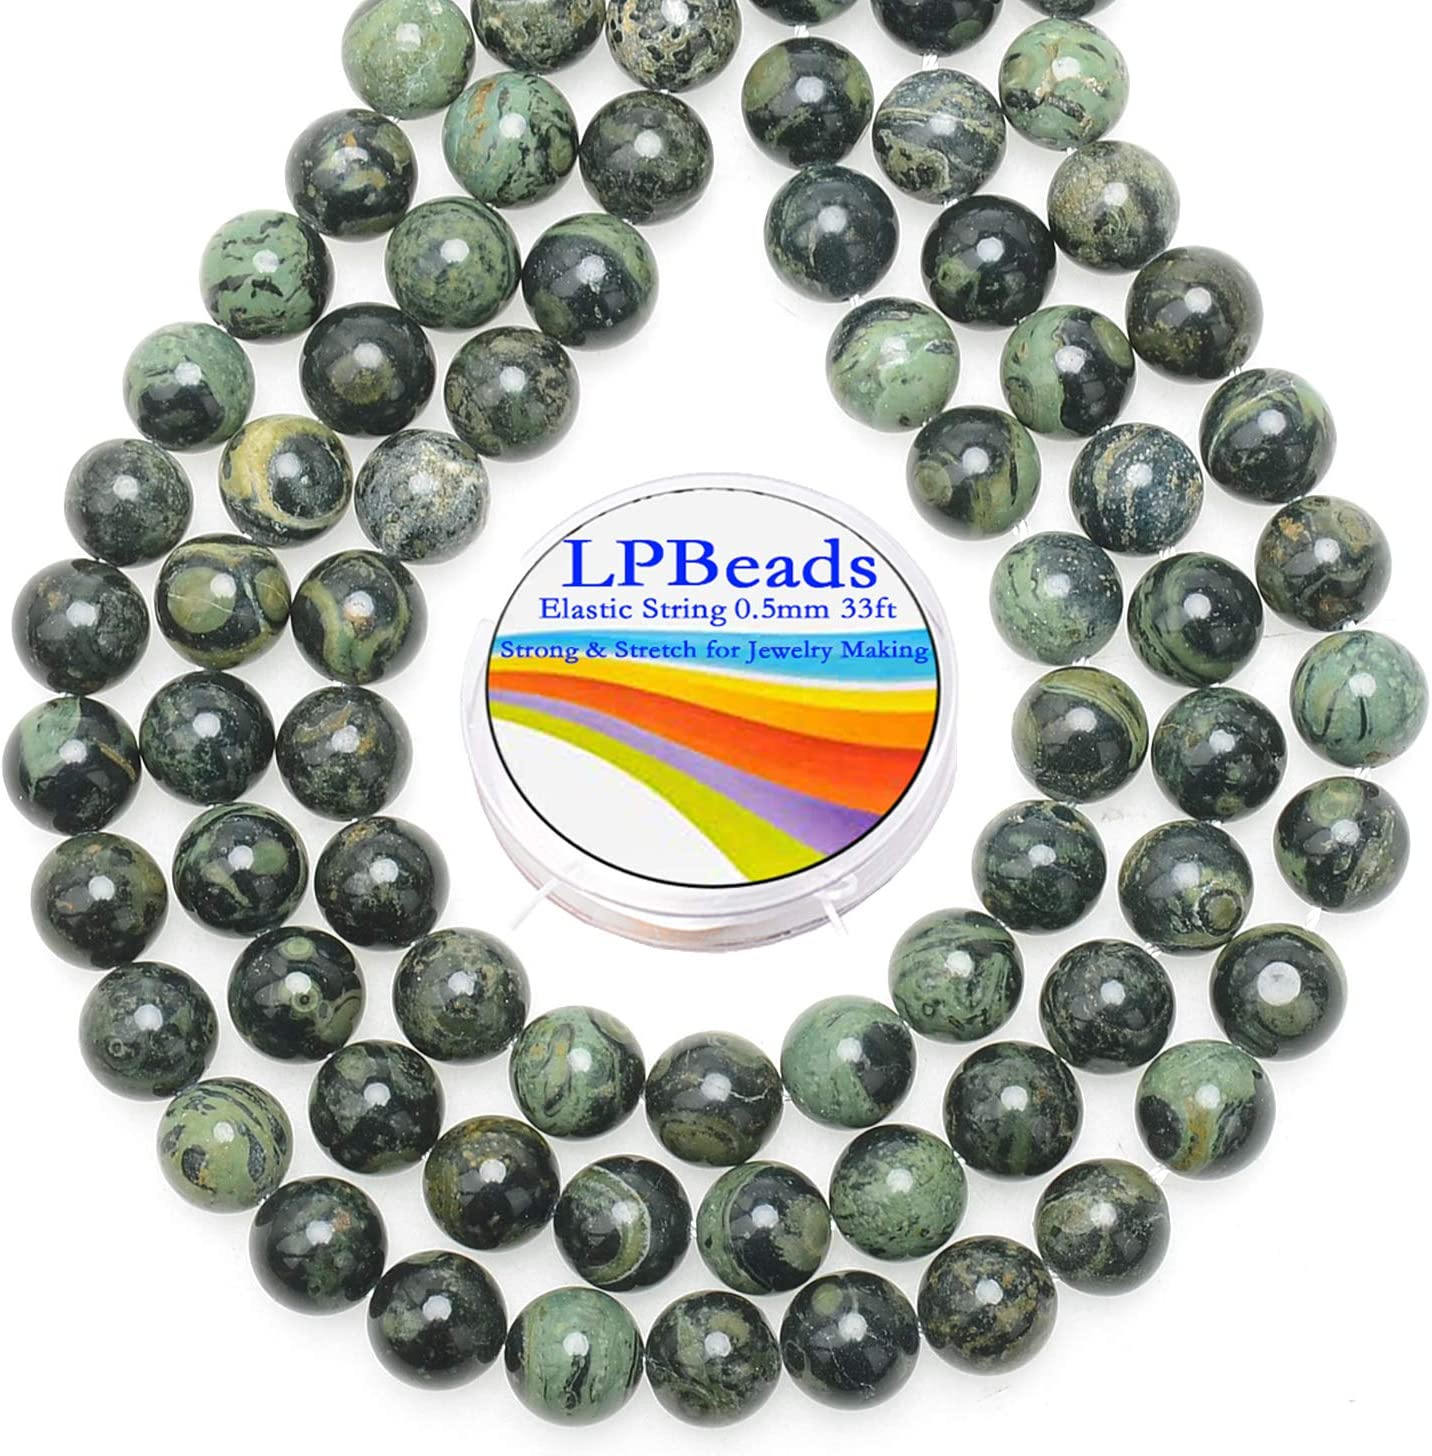 LPBeads 200Pcs Polished 6mm Round Natural Black Larvikite Gemstone Loose Beads with Stretch Cord for Jewelry Making Bracelets